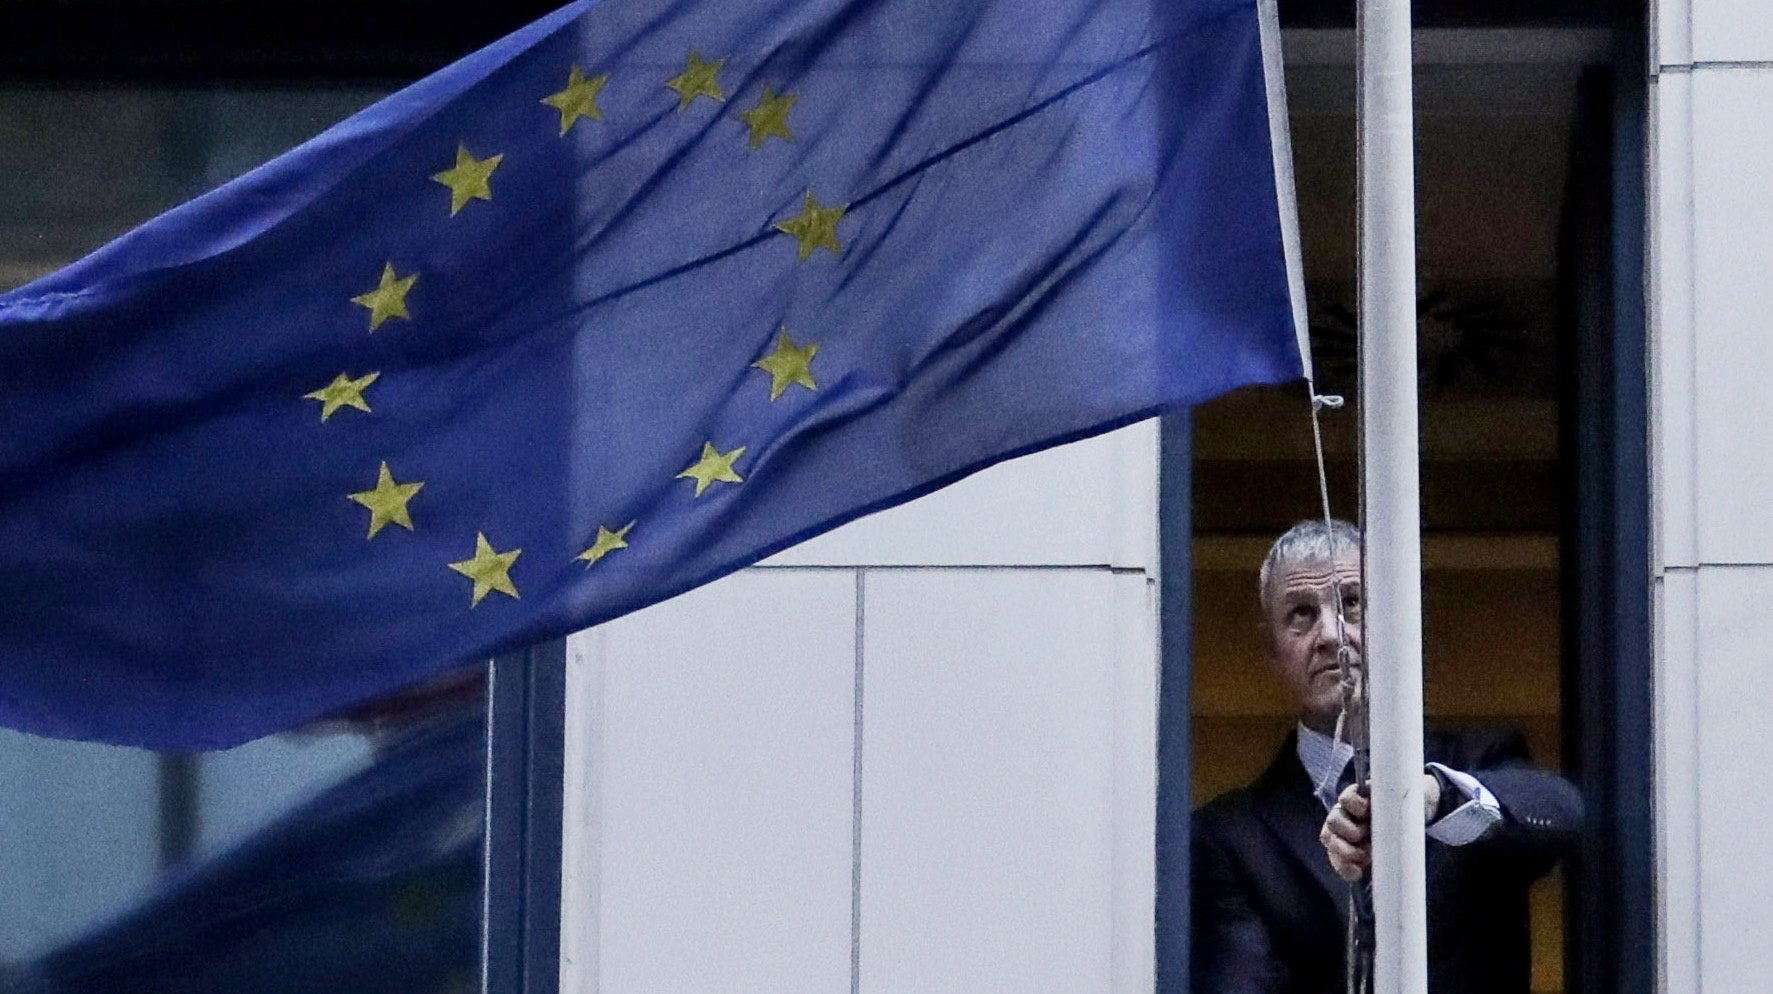 epaselect epa08182520 A man removes the European Union flag from the UK representation to the EU in Brussels, Belgium, 31 January 2020. Britain officially exits the EU on 31 January 2020, beginning an eleven month transition period.  EPA/OLIVIER HOSLET / POOL